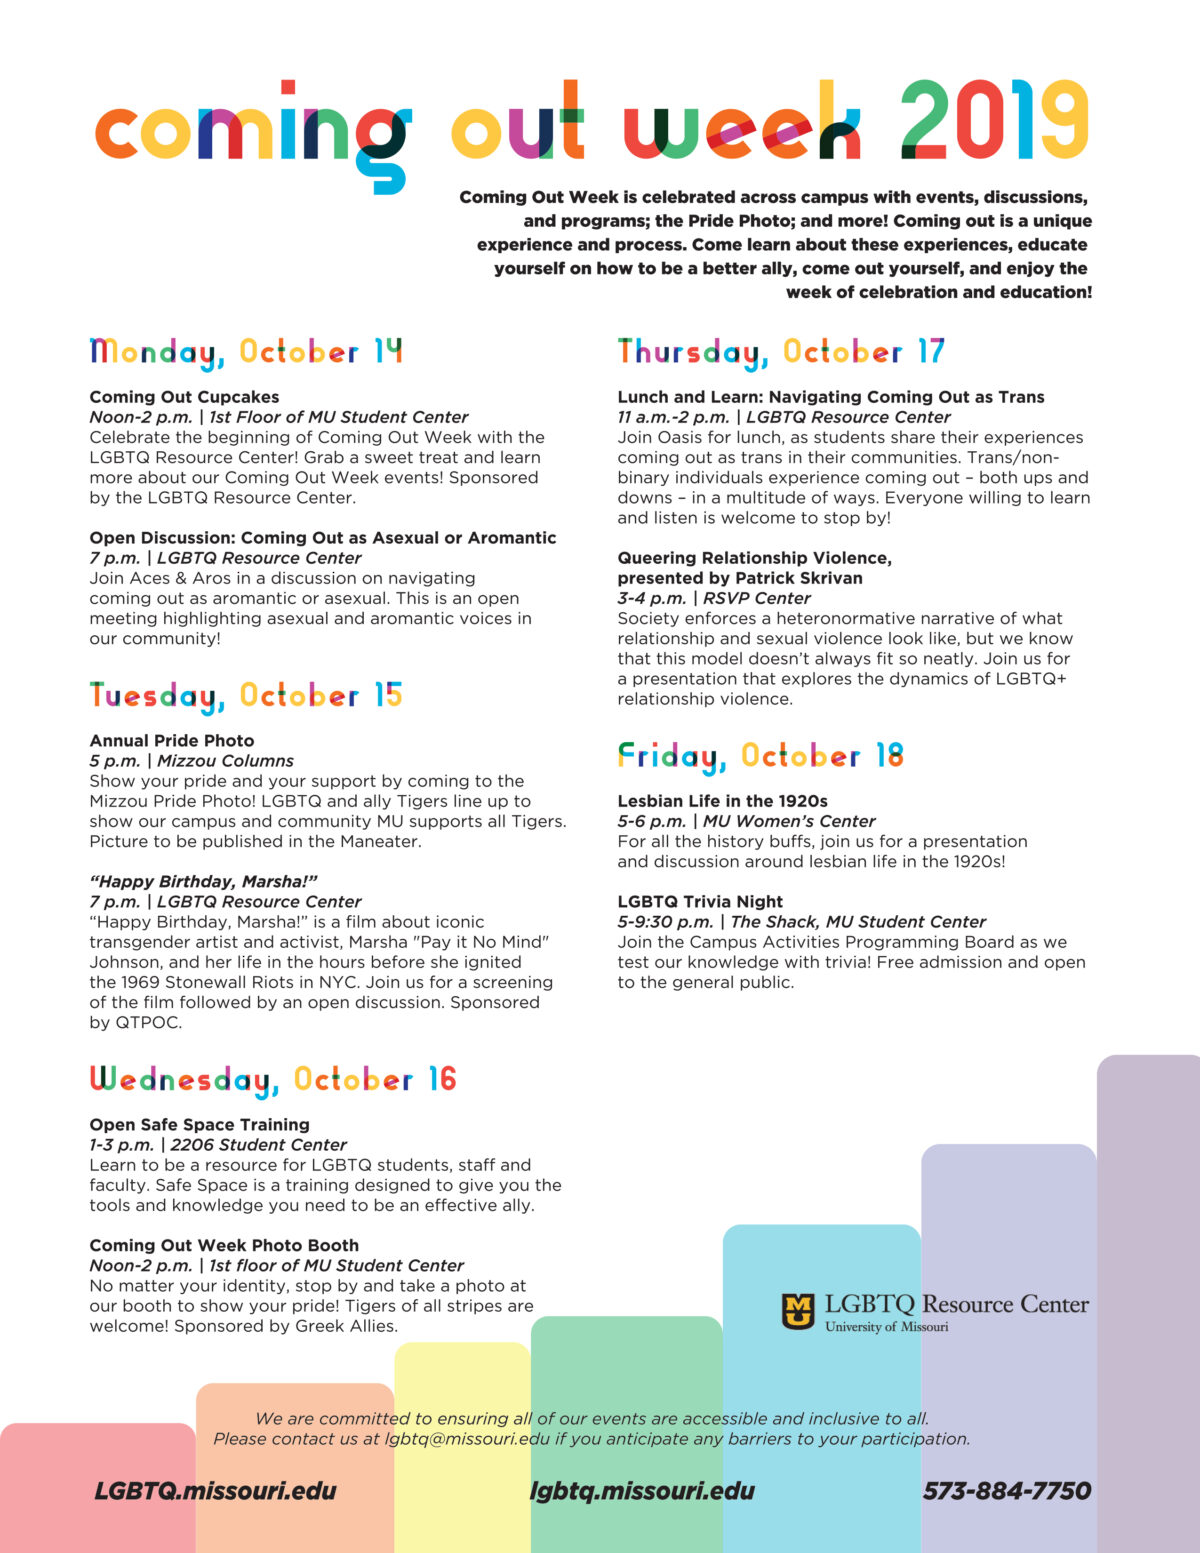 Coming Out Week event calendar. All text is in the post above.